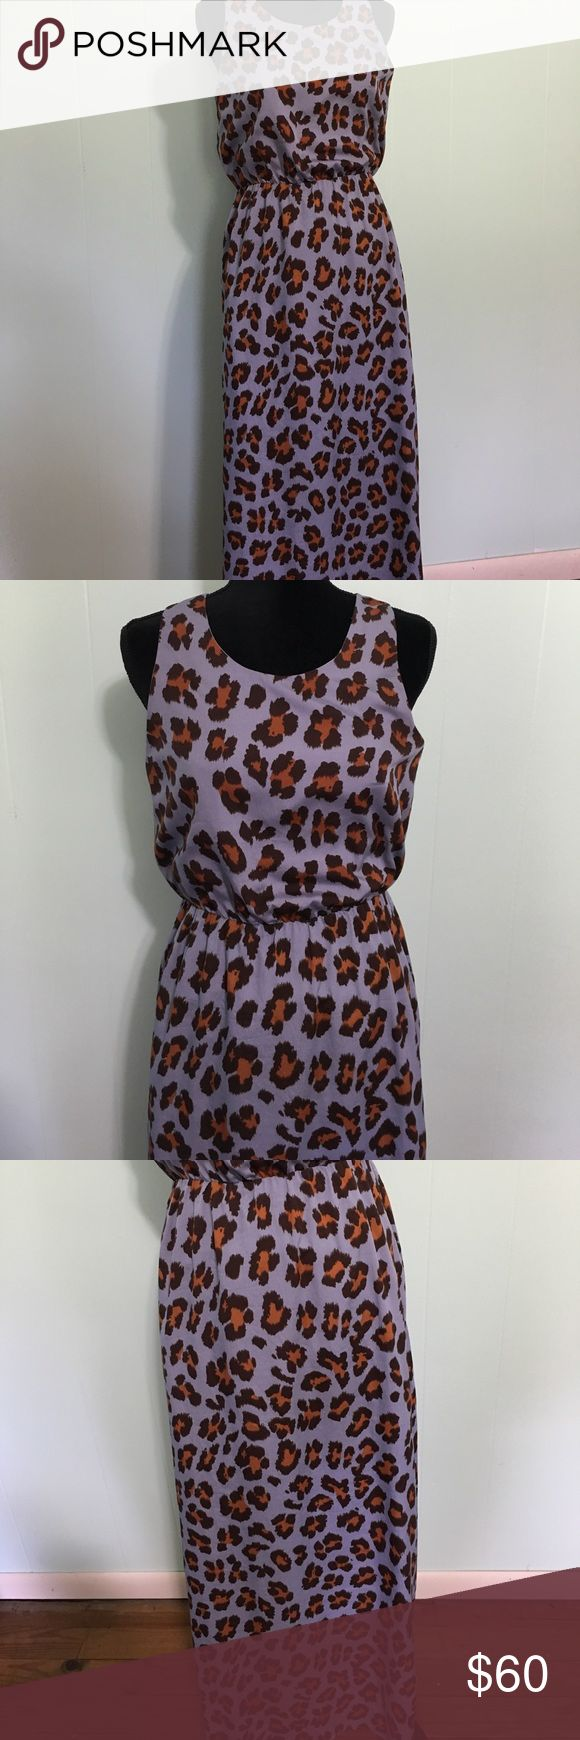 W118 by Walter Baker Leopard Maxi Dress Small This dress checks off every box of My favorite things.  Light and airy but not see through✅  racer back so I can wear a comfortable bra ✅ a different spin on leopard print ✅ slits so it's easy to move ✅ annnd a cinched in waist for flattery ✅.  It's perfect.  No flaws.  The lining goes to the knees.  From the knees each side has a slit. W118 by Walter Baker Dresses Maxi